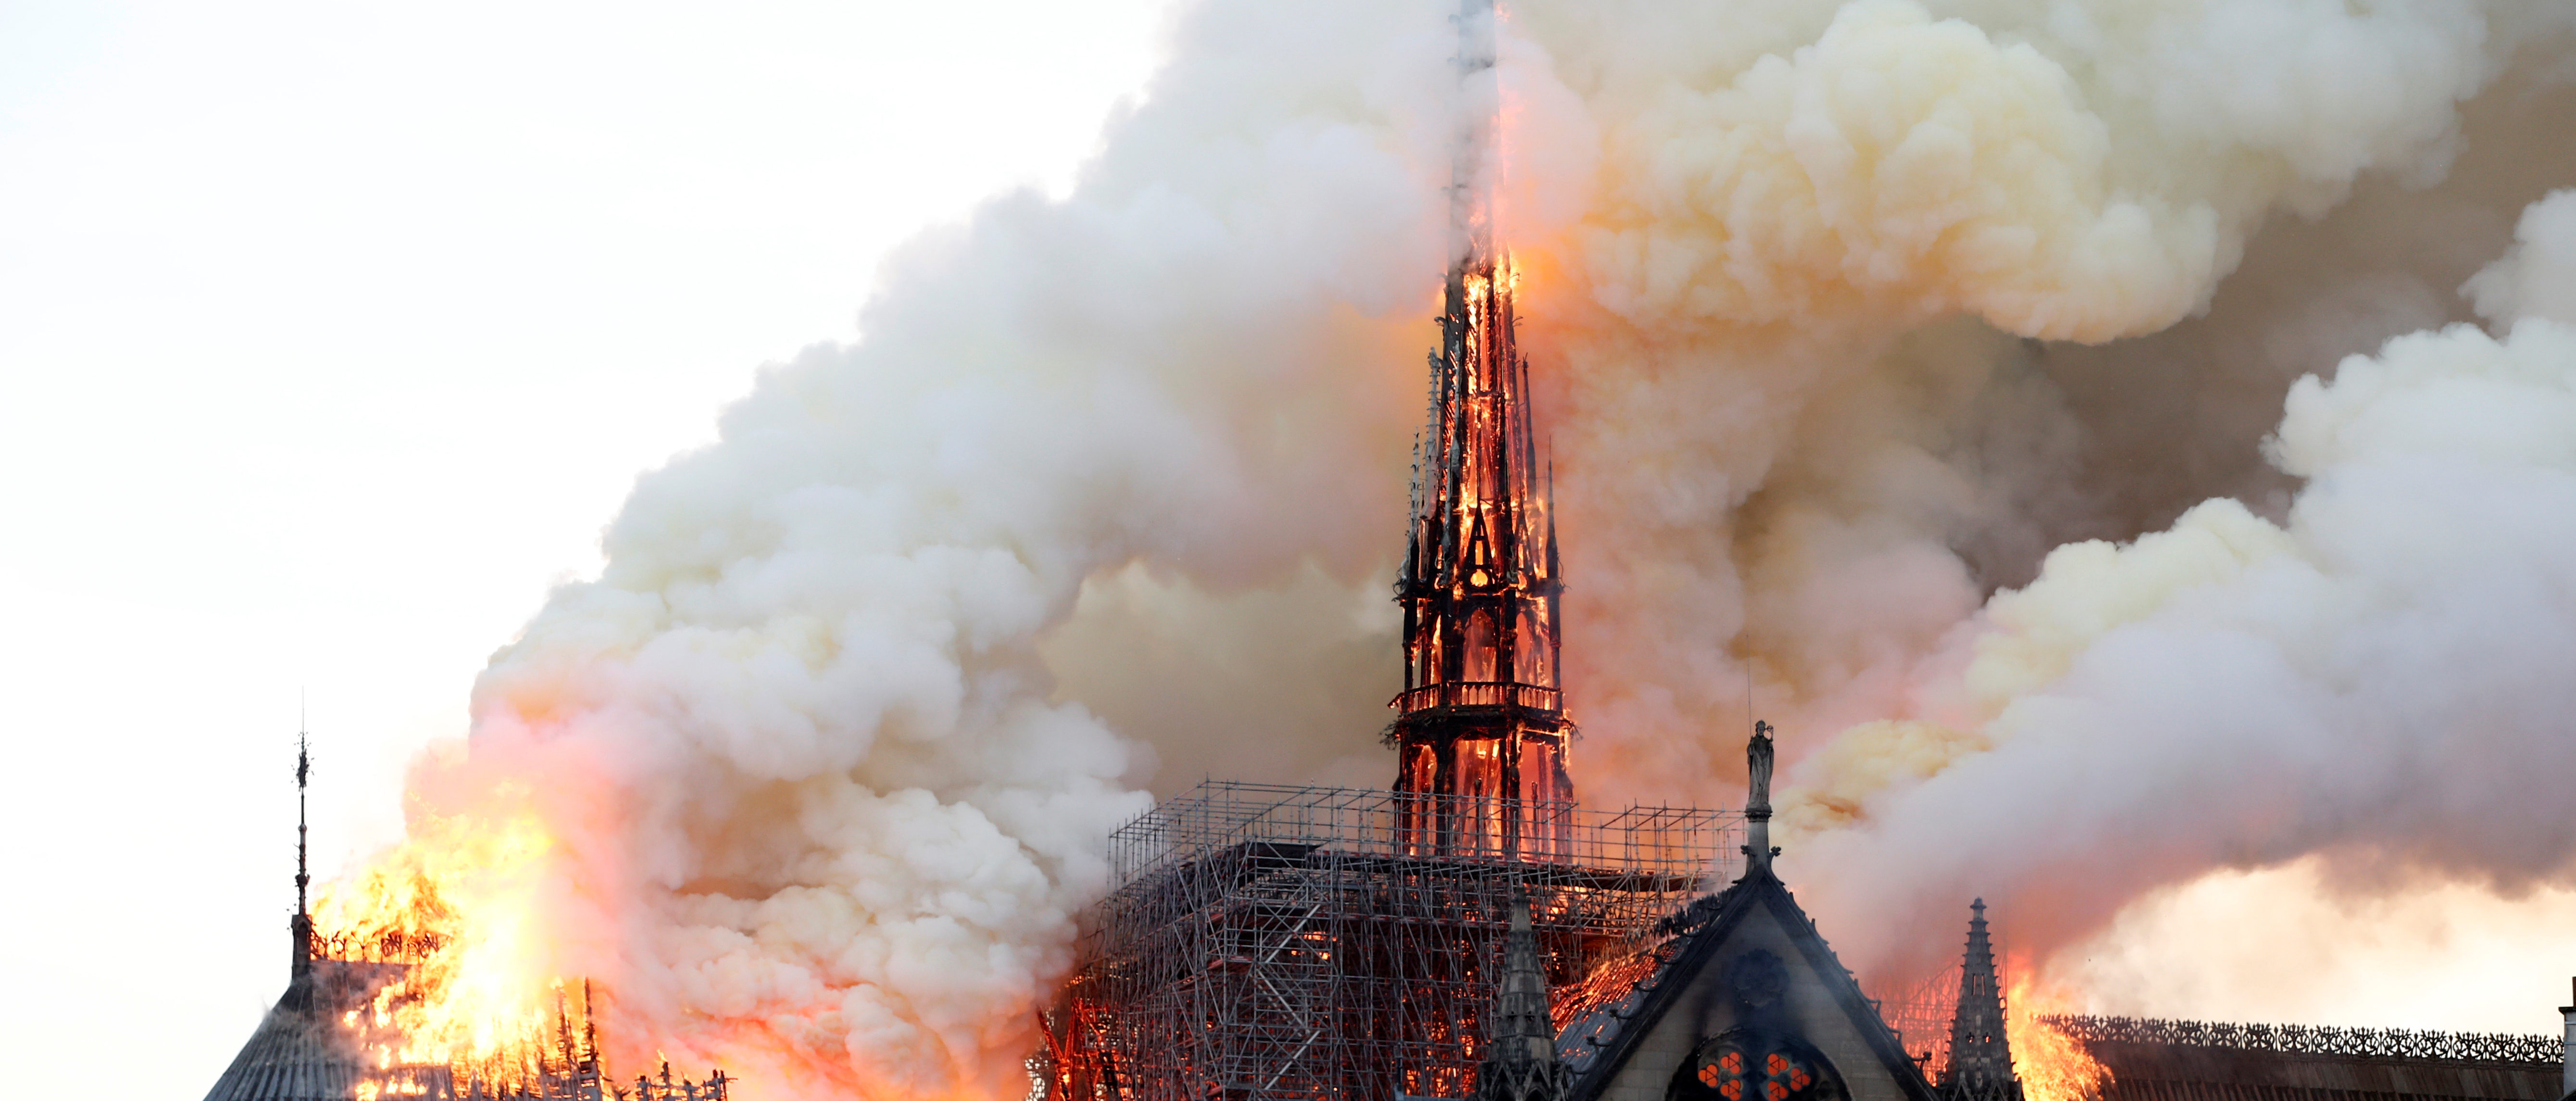 YouTube Accidentally Links Fires to 9/11 REUTERS/Benoit Tessier